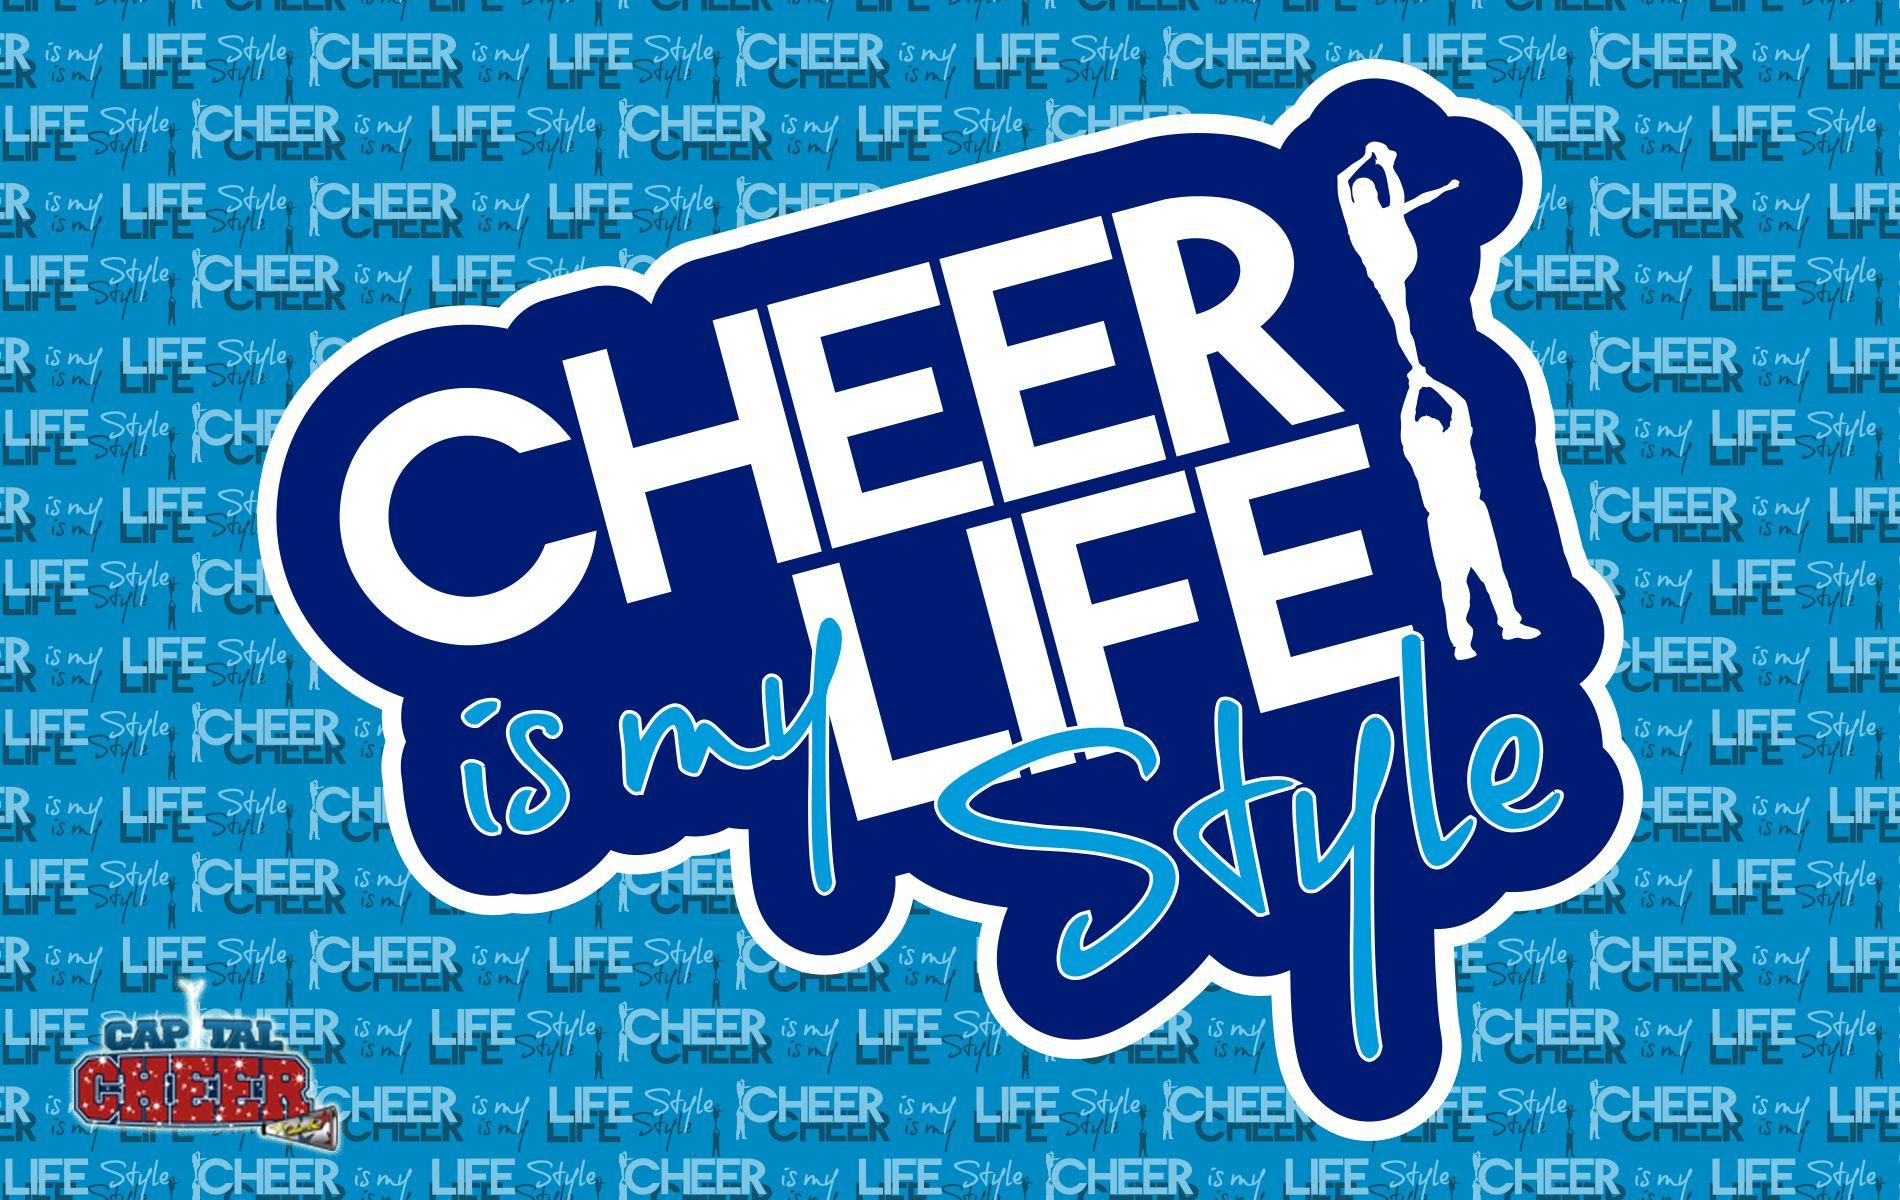 Cheer Bows Wallpapers - Wallpaper Cave